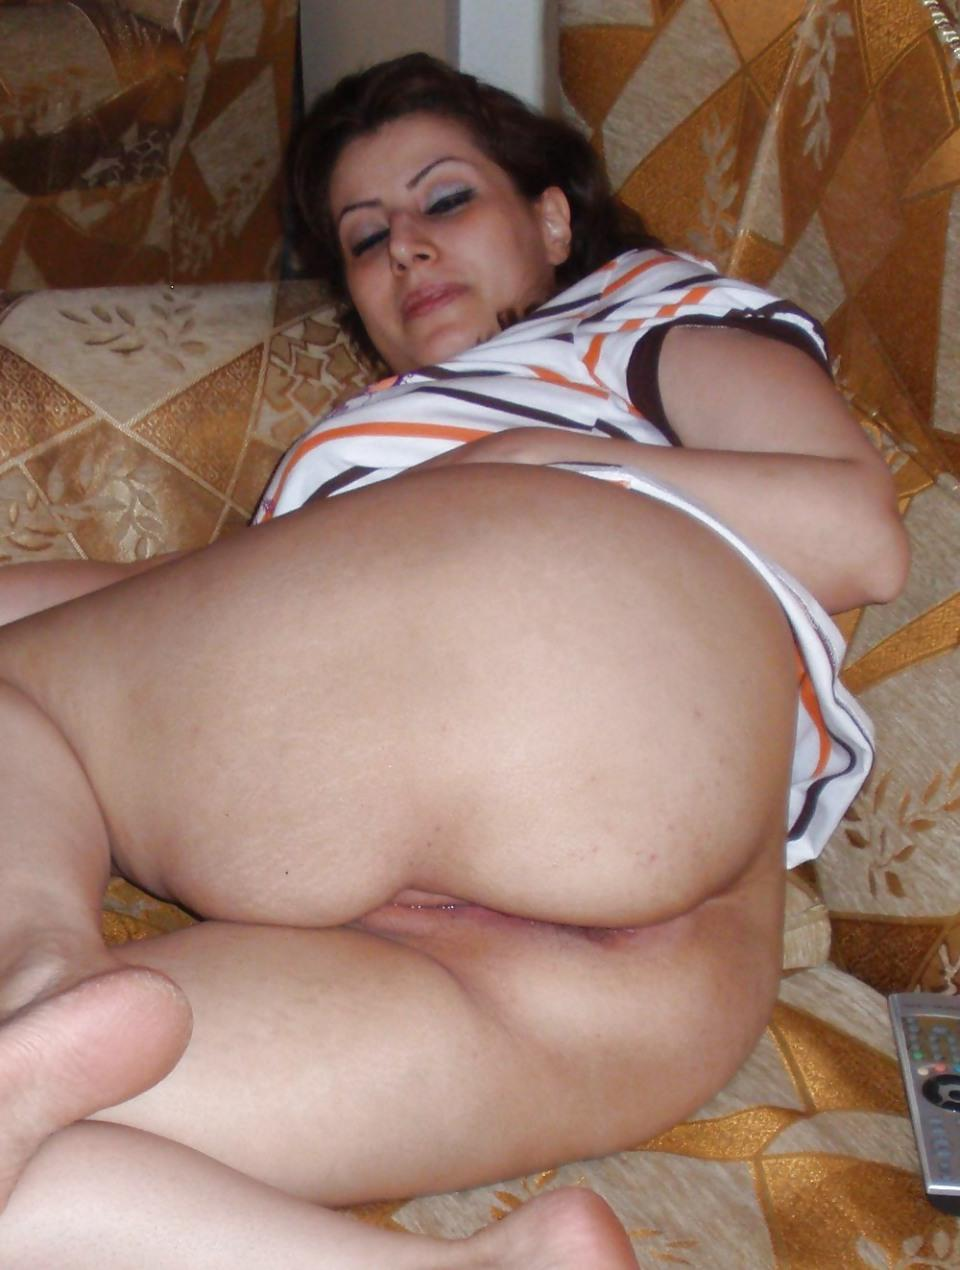 Valuable Nud fat iranain girles apologise, but